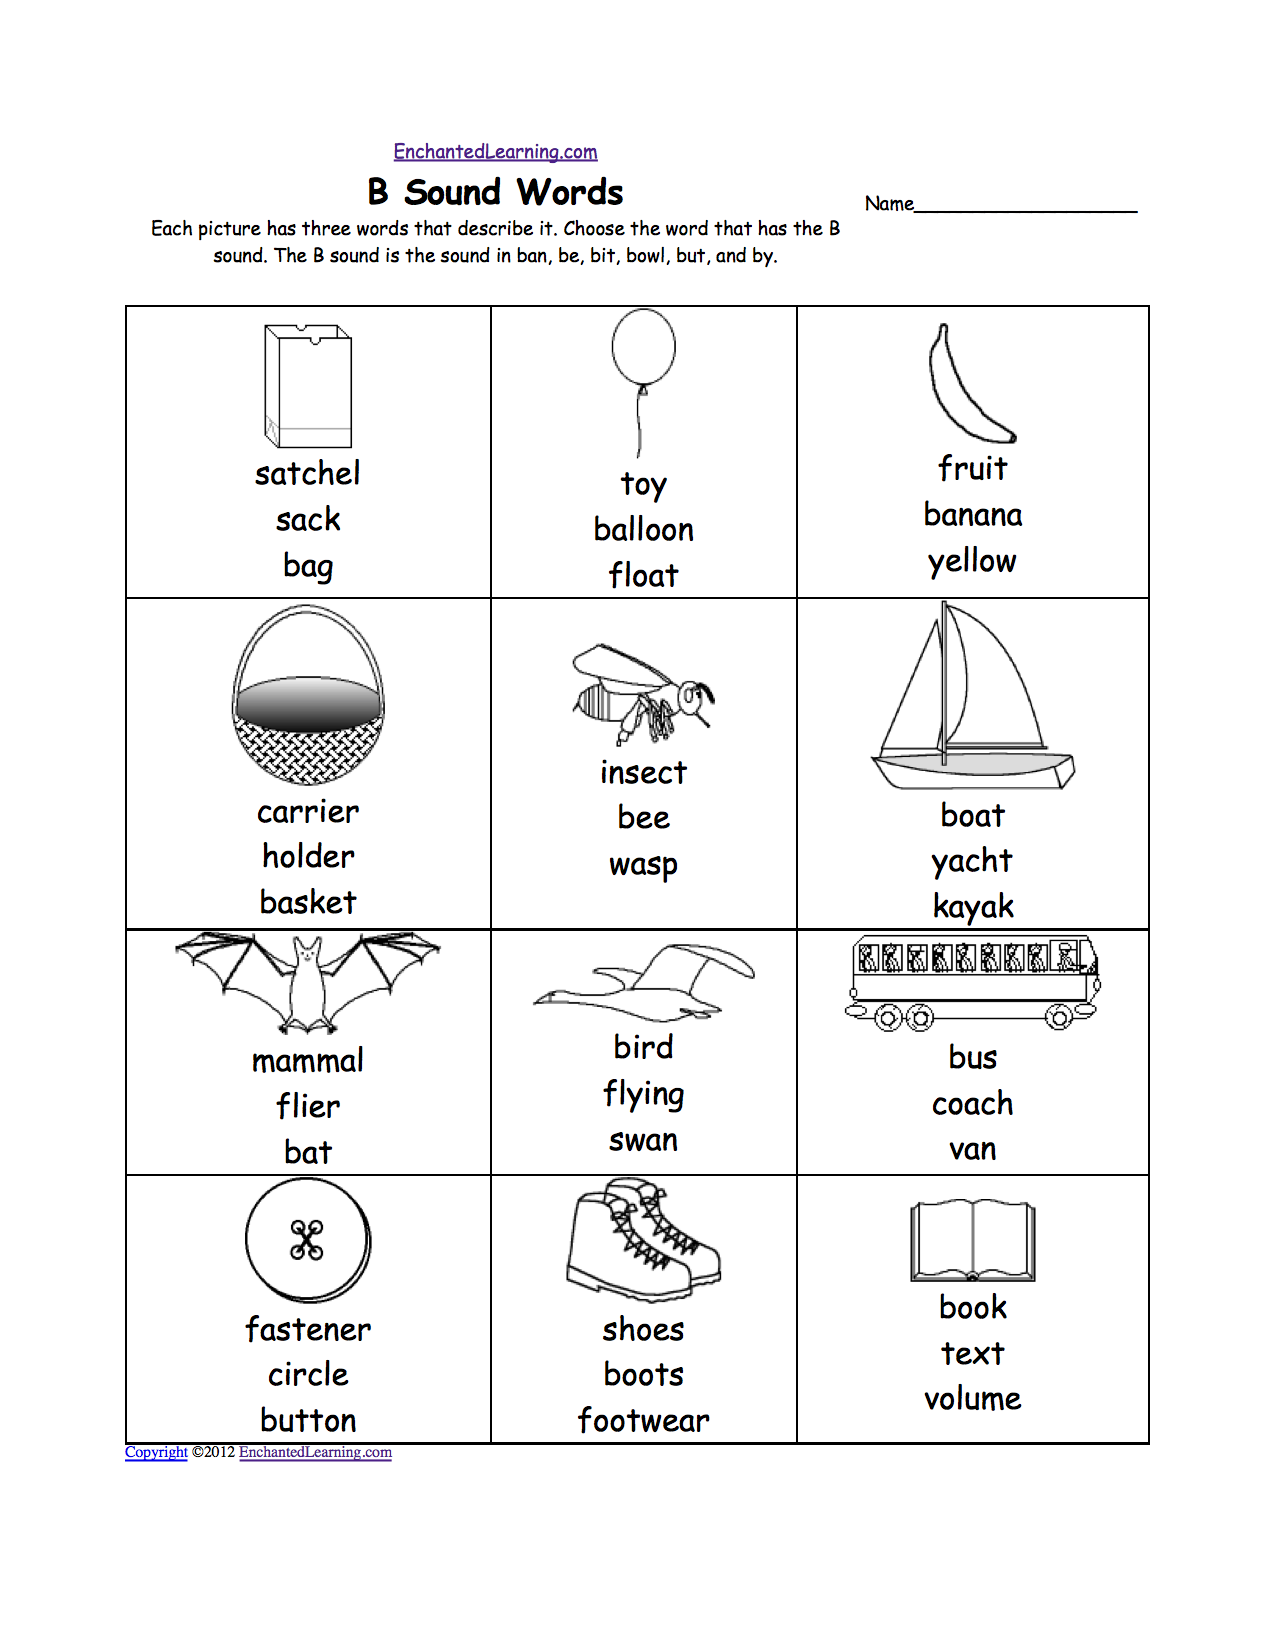 Weirdmailus  Seductive Phonics Worksheets Multiple Choice Worksheets To Print  With Heavenly Quotbquot Sound Phonics Worksheet Multiple Choice Each Picture Has Three Words That Describe It Choose The Word That Has A Quotbquot Sound The Quotbquot Sound Is The Sound  With Beautiful Th Grade Proofreading Worksheets Also Esl Questions Worksheets In Addition Fact Triangles Worksheets And Free Nd Grade Language Arts Worksheets As Well As Jumanji Worksheets Additionally Long Term And Short Term Goals Worksheet From Enchantedlearningcom With Weirdmailus  Heavenly Phonics Worksheets Multiple Choice Worksheets To Print  With Beautiful Quotbquot Sound Phonics Worksheet Multiple Choice Each Picture Has Three Words That Describe It Choose The Word That Has A Quotbquot Sound The Quotbquot Sound Is The Sound  And Seductive Th Grade Proofreading Worksheets Also Esl Questions Worksheets In Addition Fact Triangles Worksheets From Enchantedlearningcom